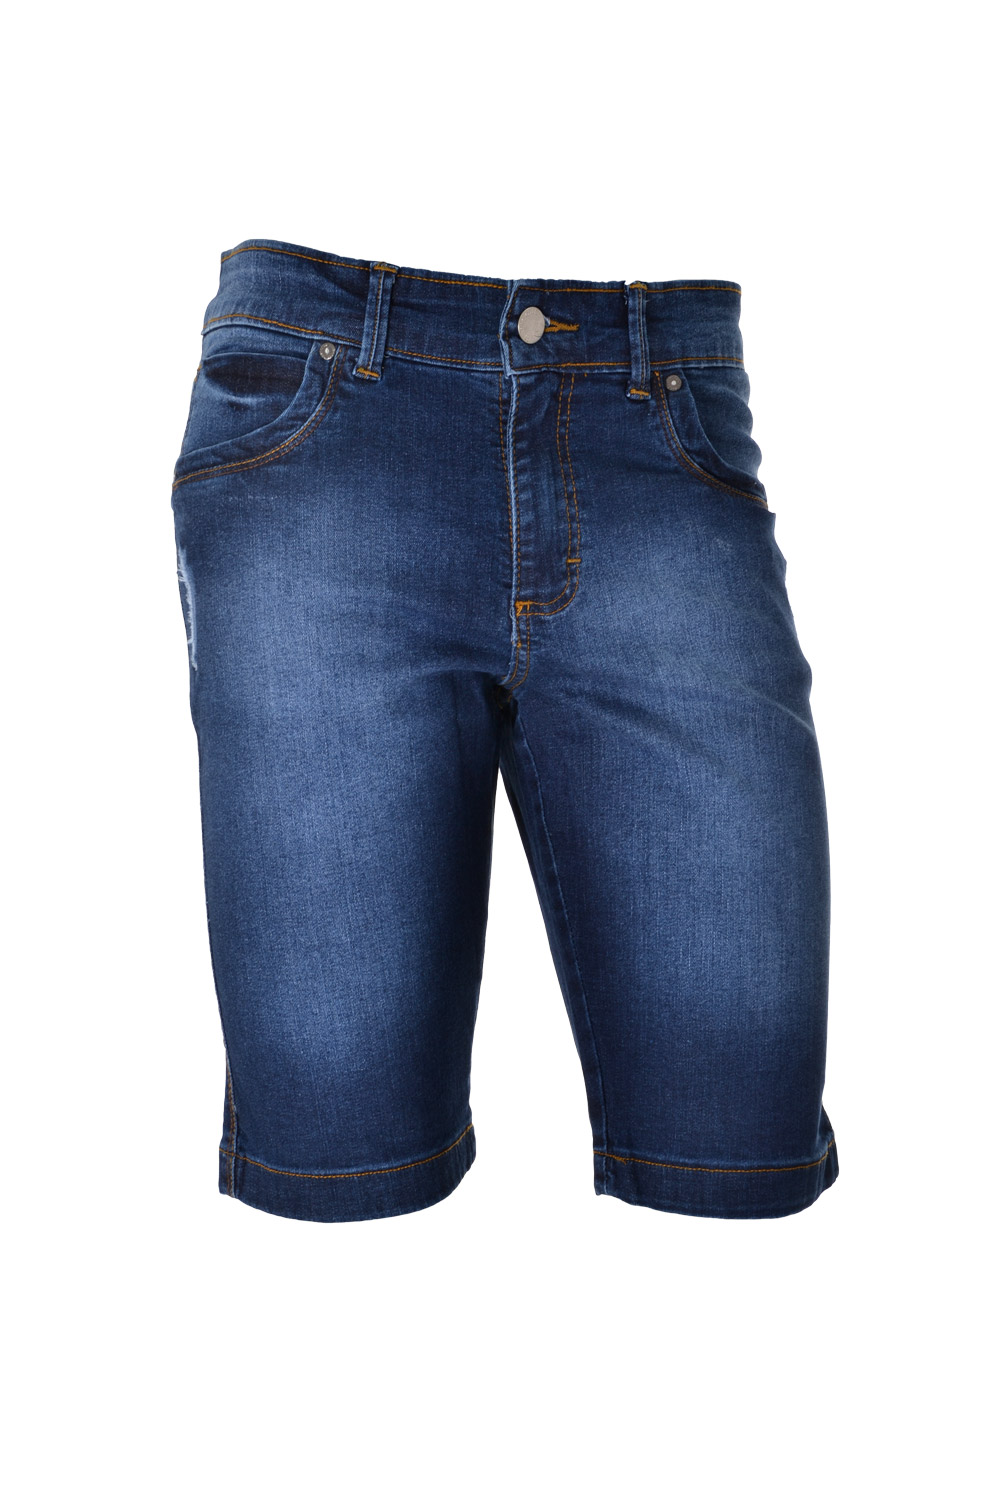 BERMUDA BLUES SLIM ALGODAO E ELASTANO STRETCH STONED AZUL ESCURO